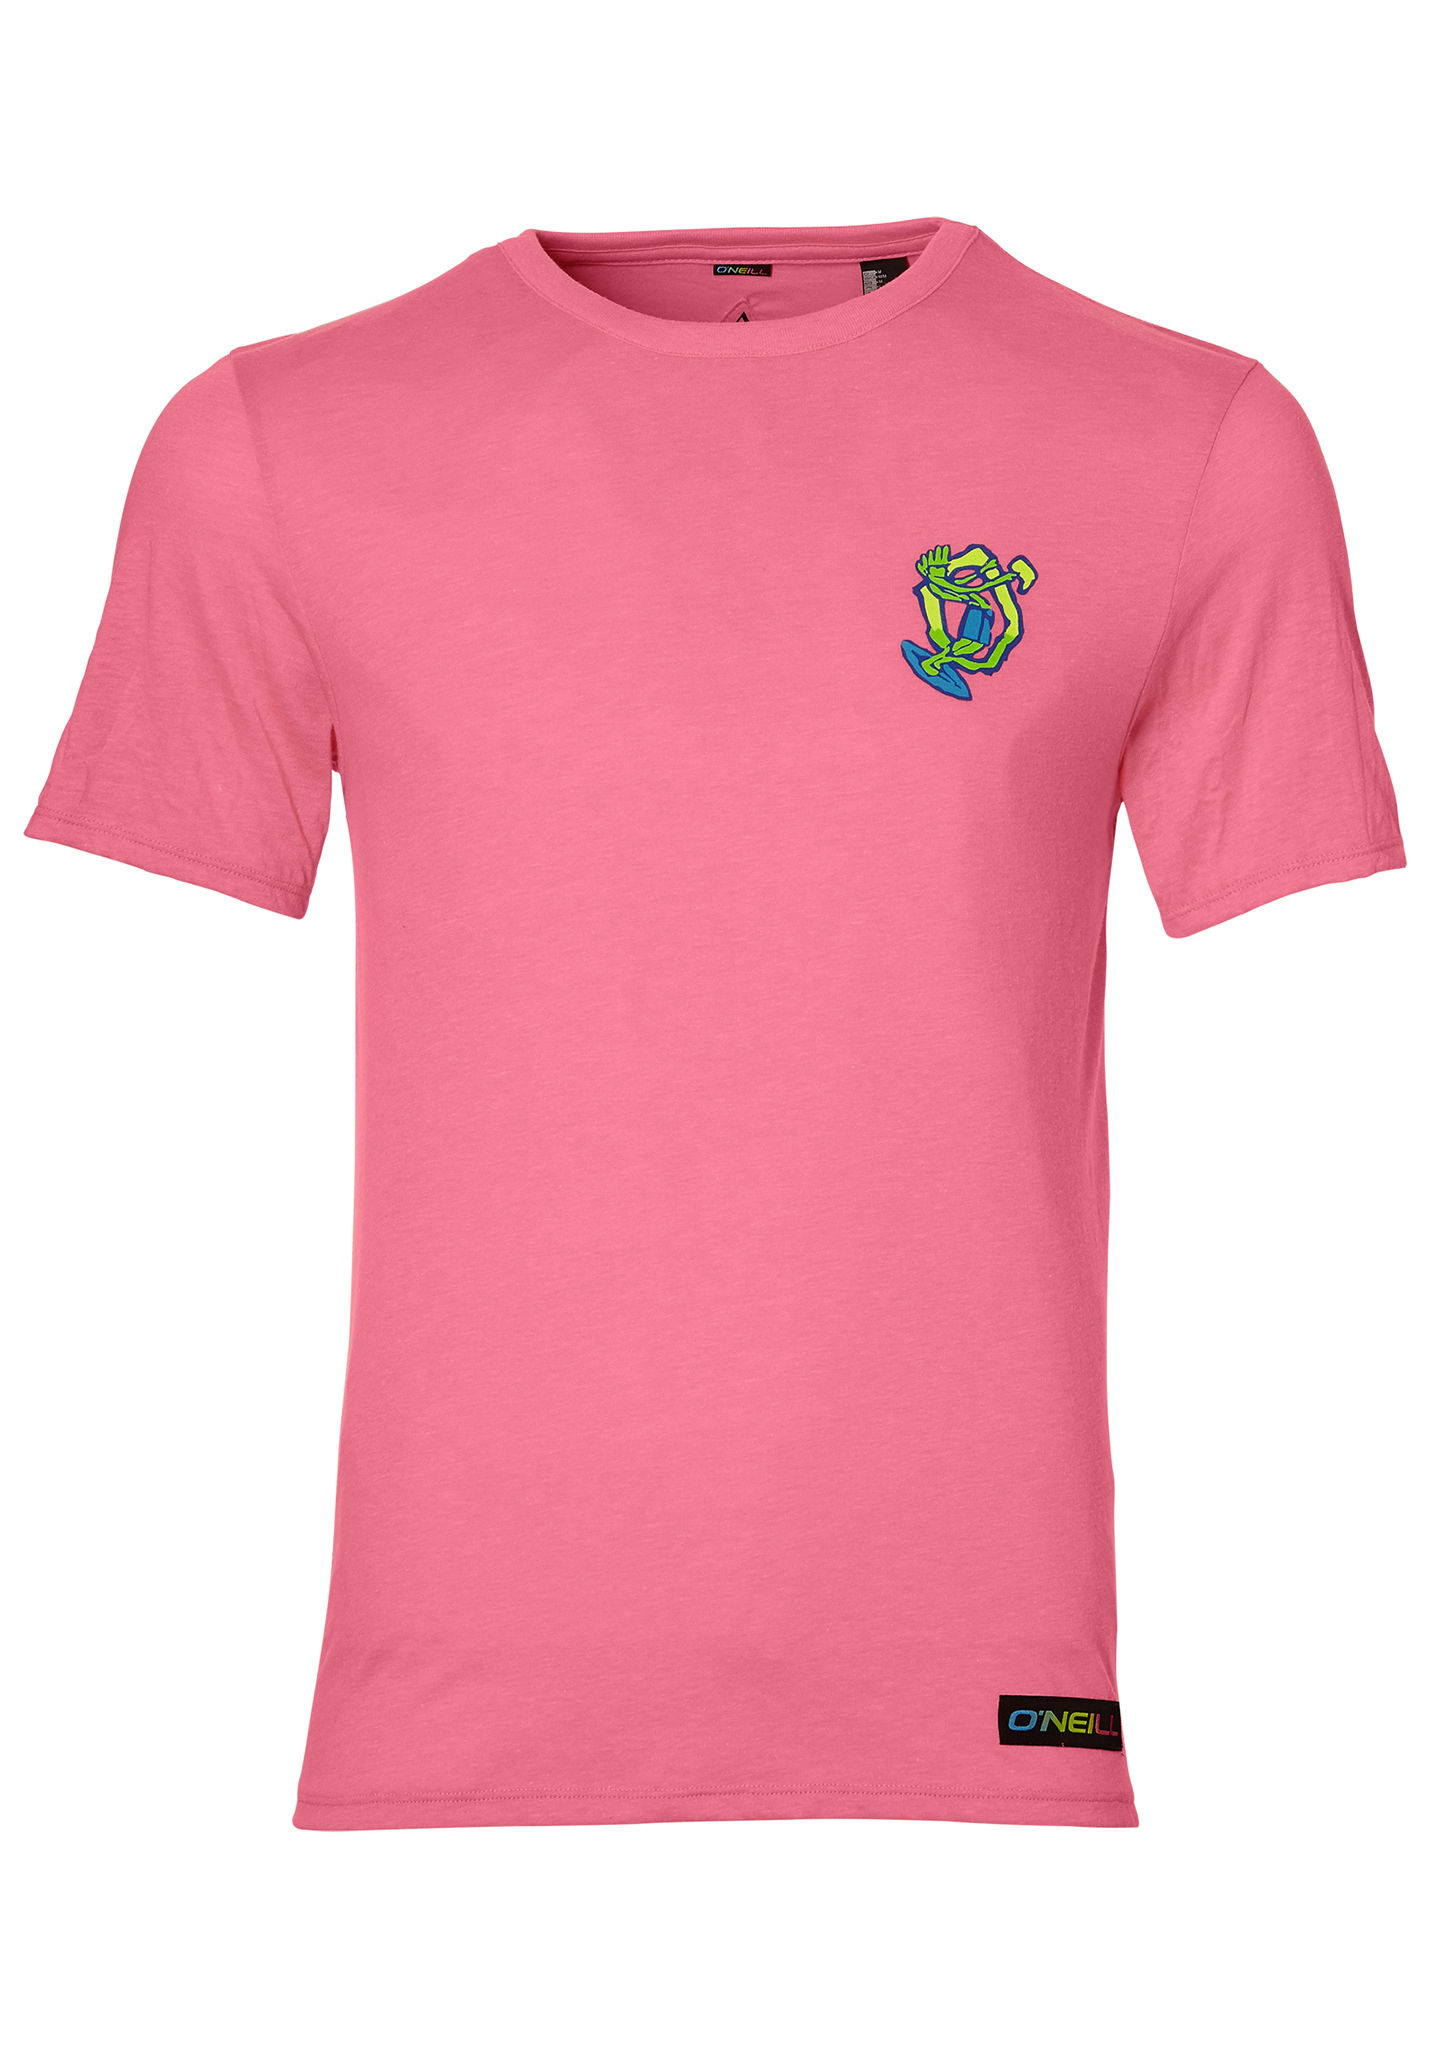 T 88 Planet Shirt Sports Herren Für Beach O'neill Pink AqwdTHEqa